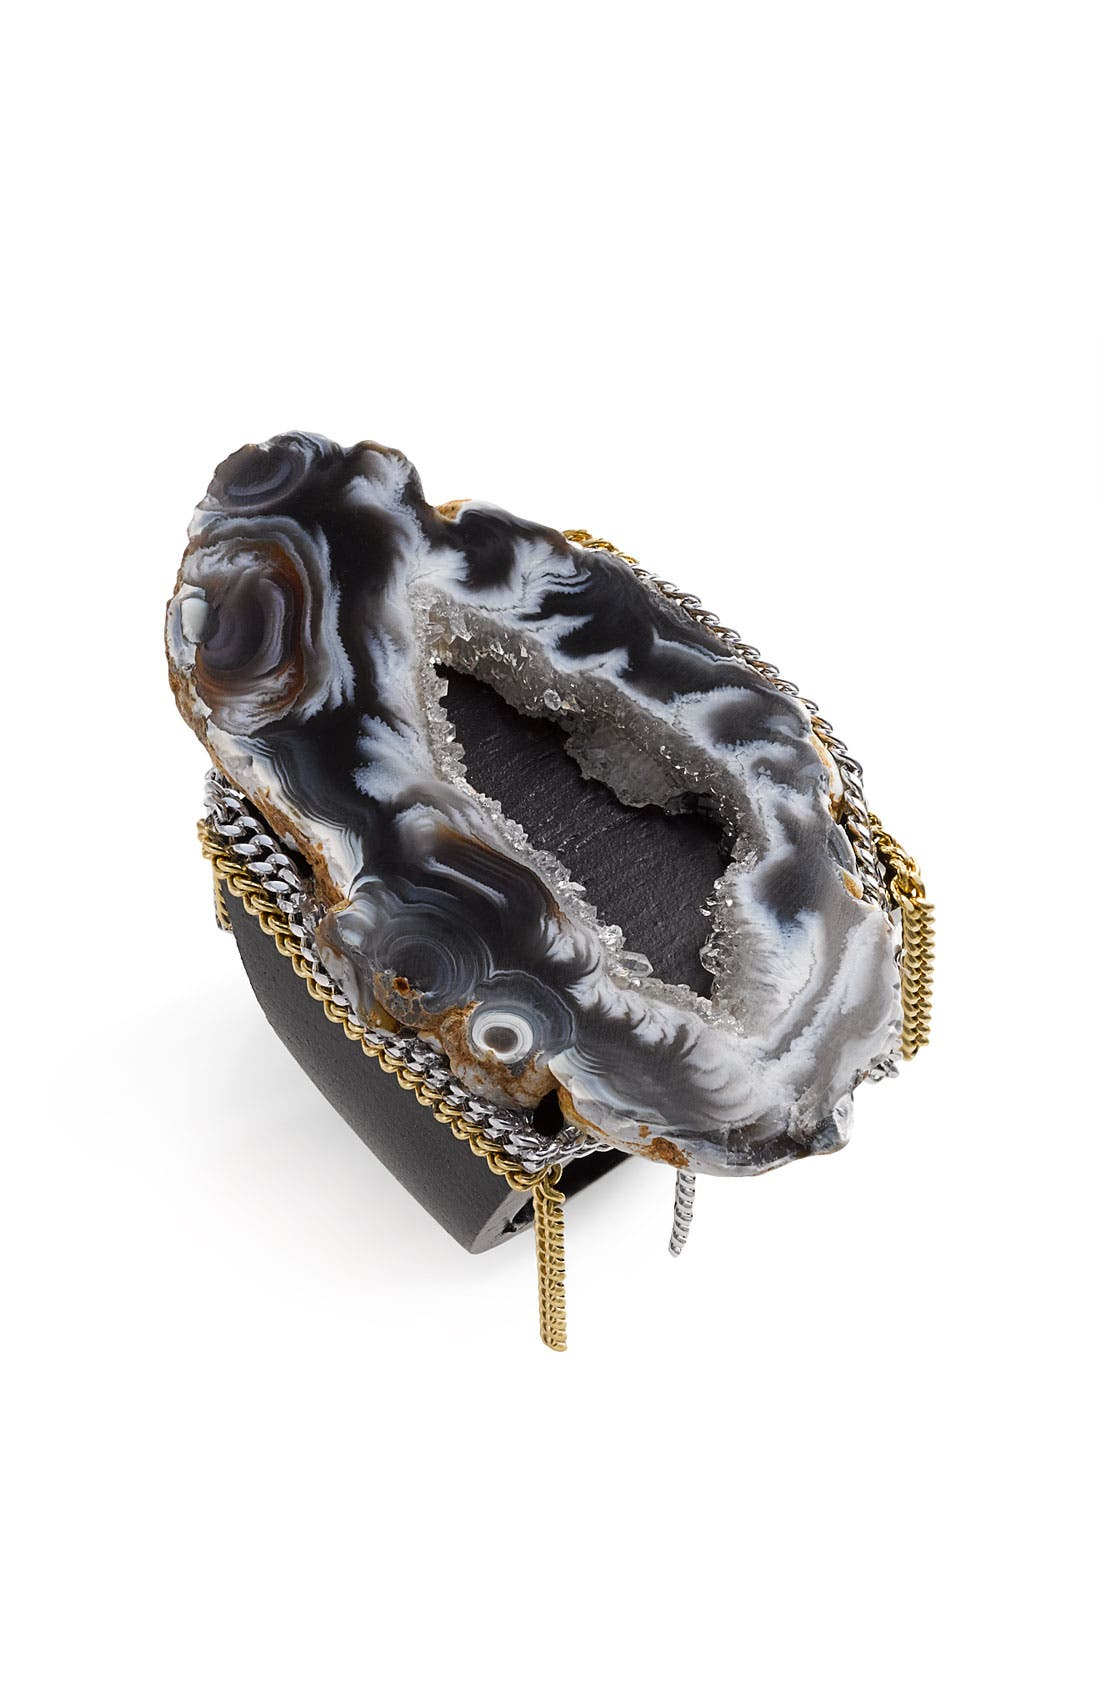 Main Image - Liz Larios Jewelry Black Ochoco Agate Ring